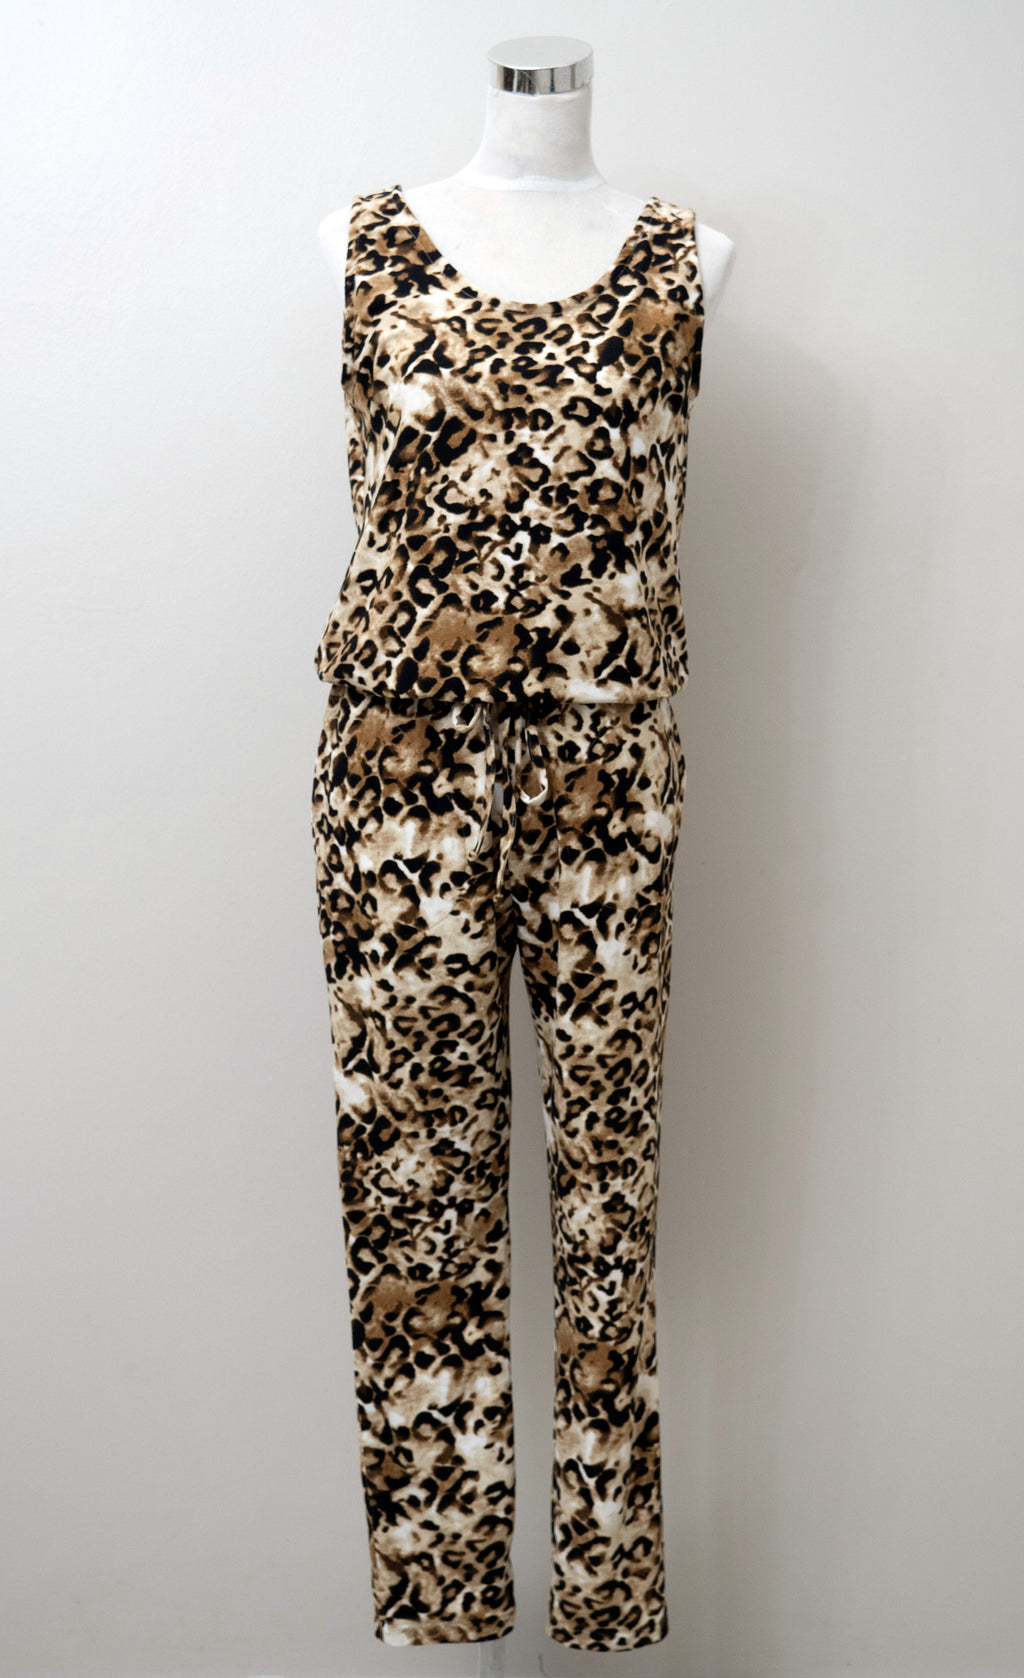 Molly Jumpsuit Jumpsuit - animal print